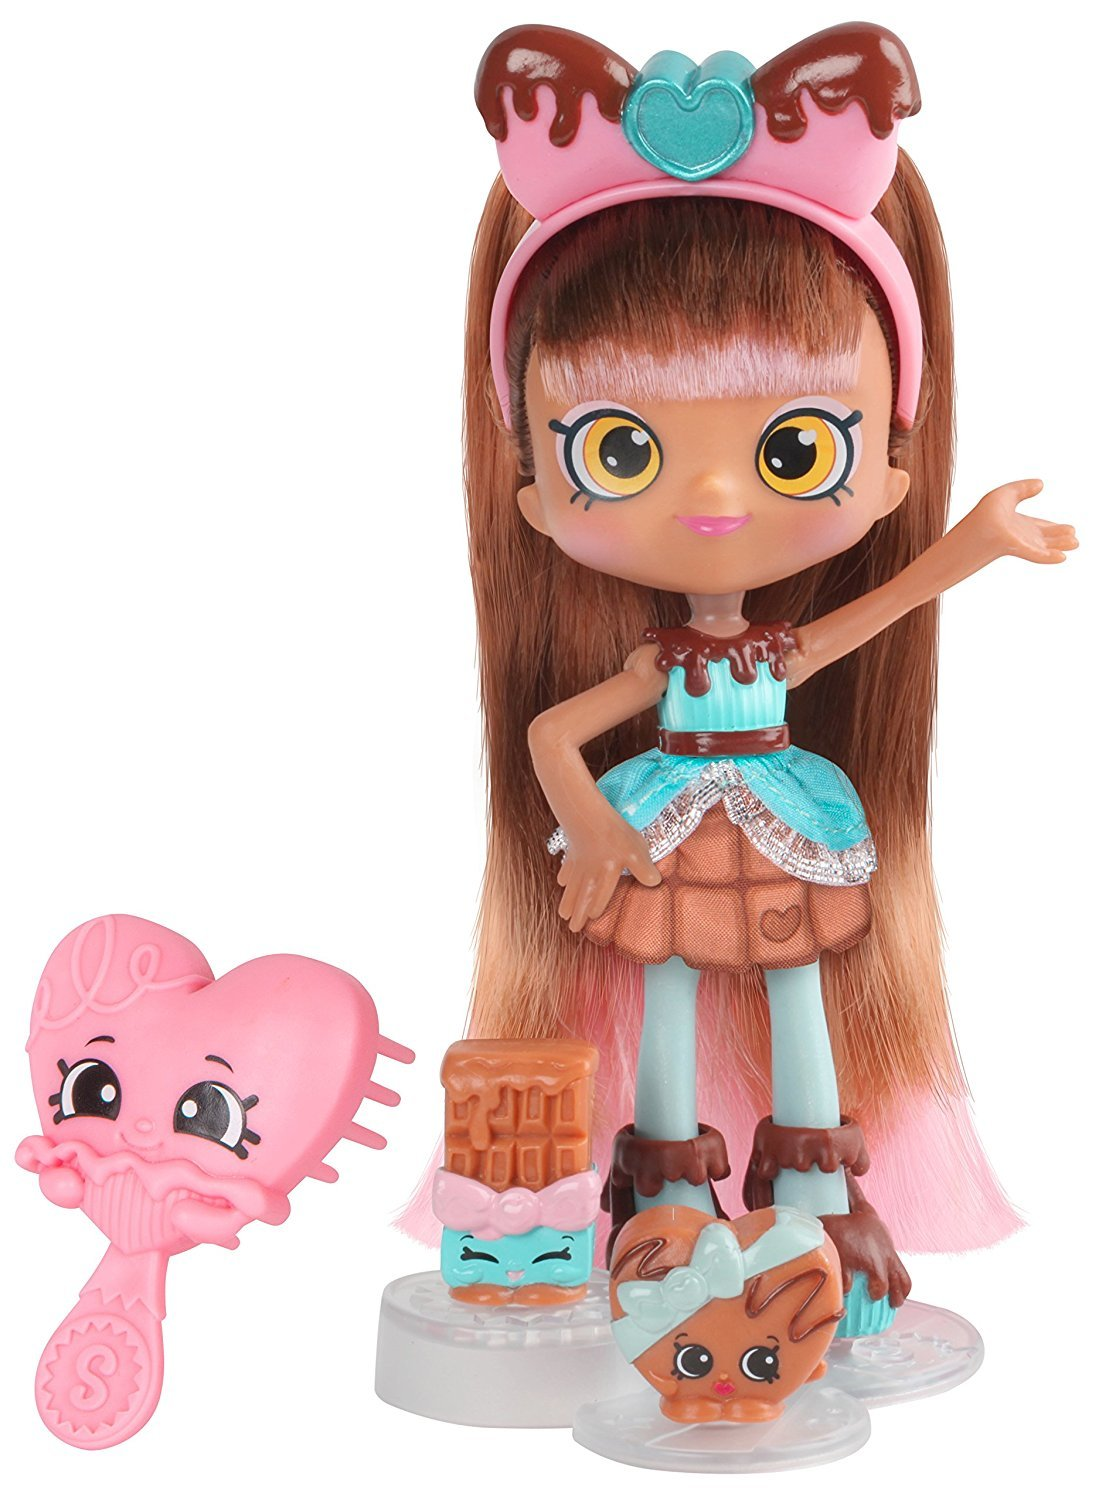 Shopkins Shoppies Doll